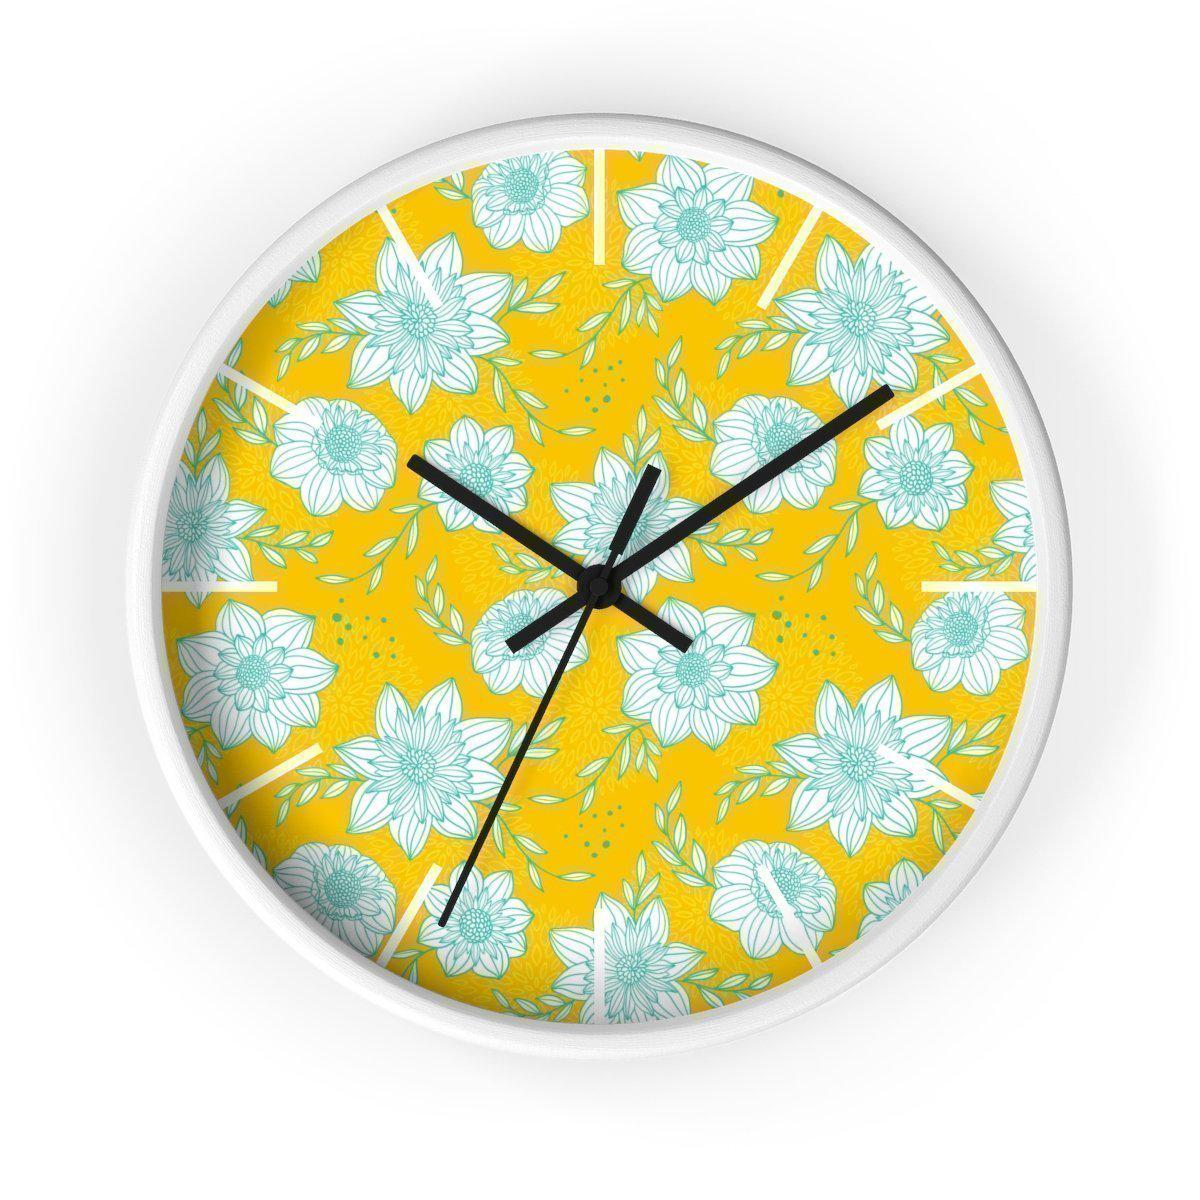 Maison d'Elite Floral Wall clock-Home Décor › Accents › Wall Decor › Clocks & Sculptures-Maison d'Elite-White-Black-Très Elite